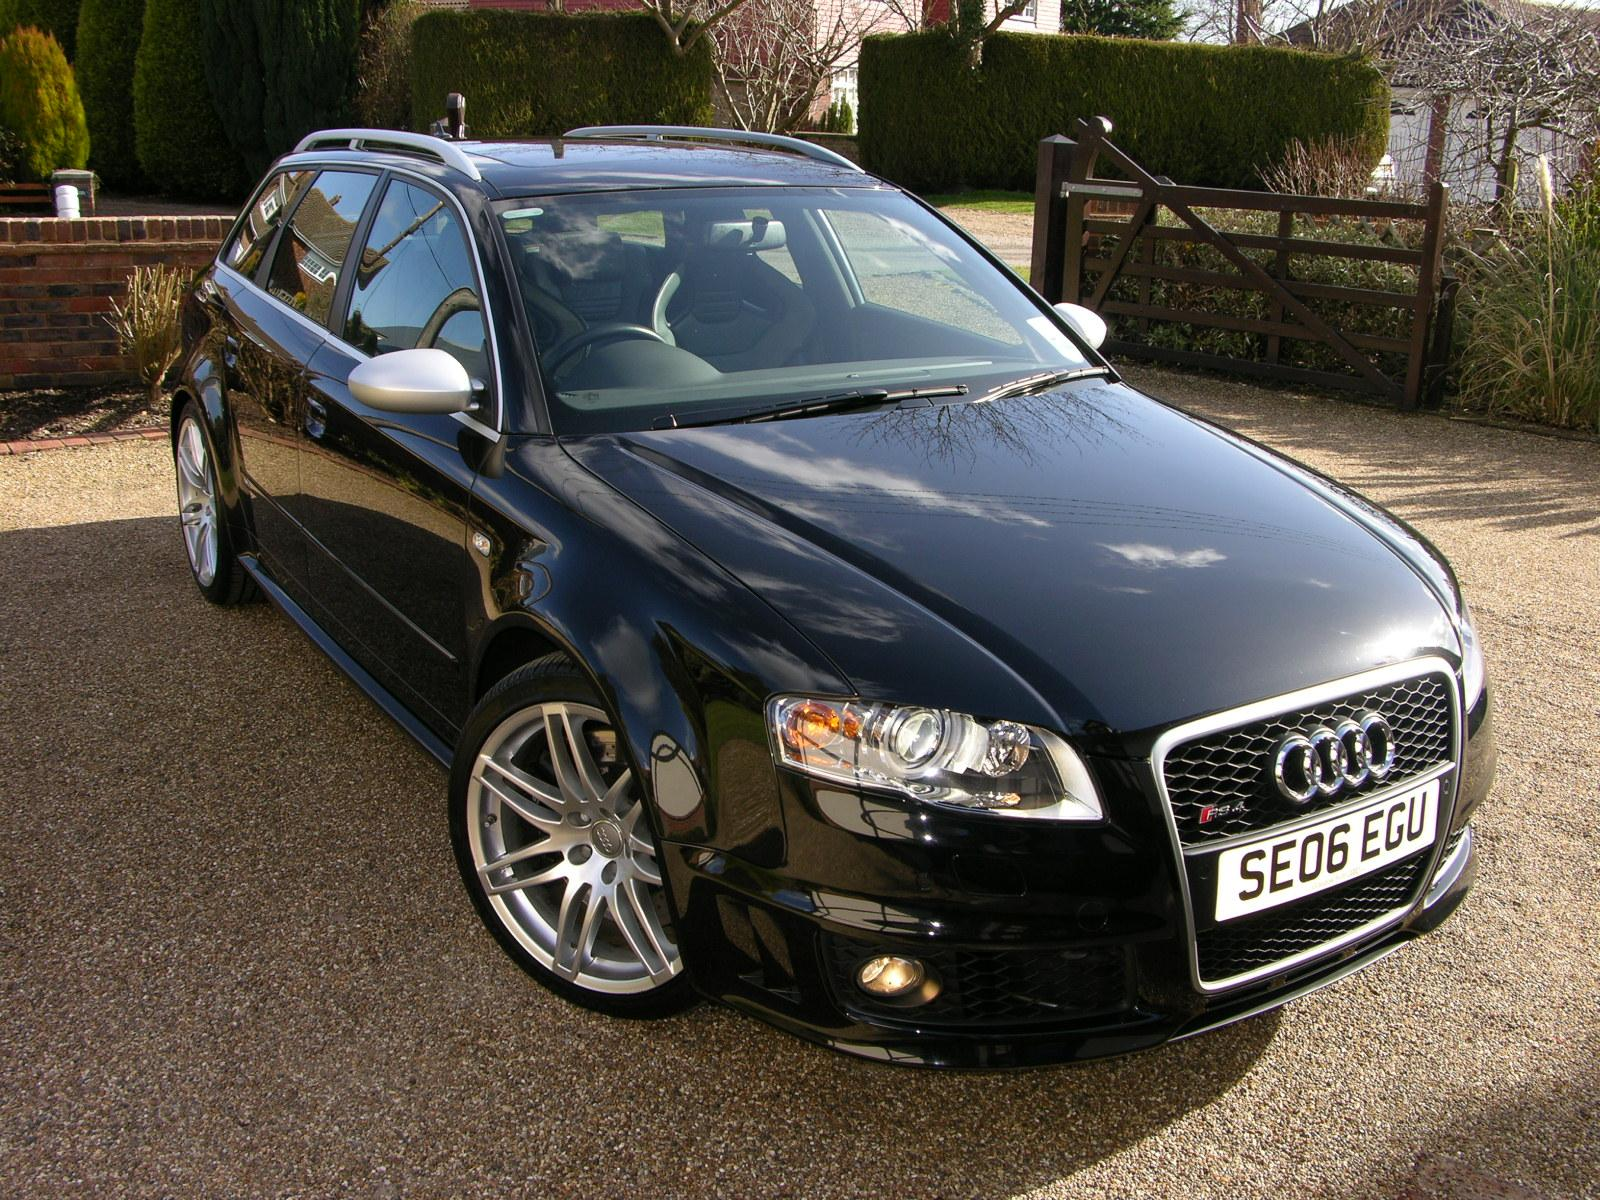 file 2006 audi rs4 avant flickr the car spy 19 jpg. Black Bedroom Furniture Sets. Home Design Ideas